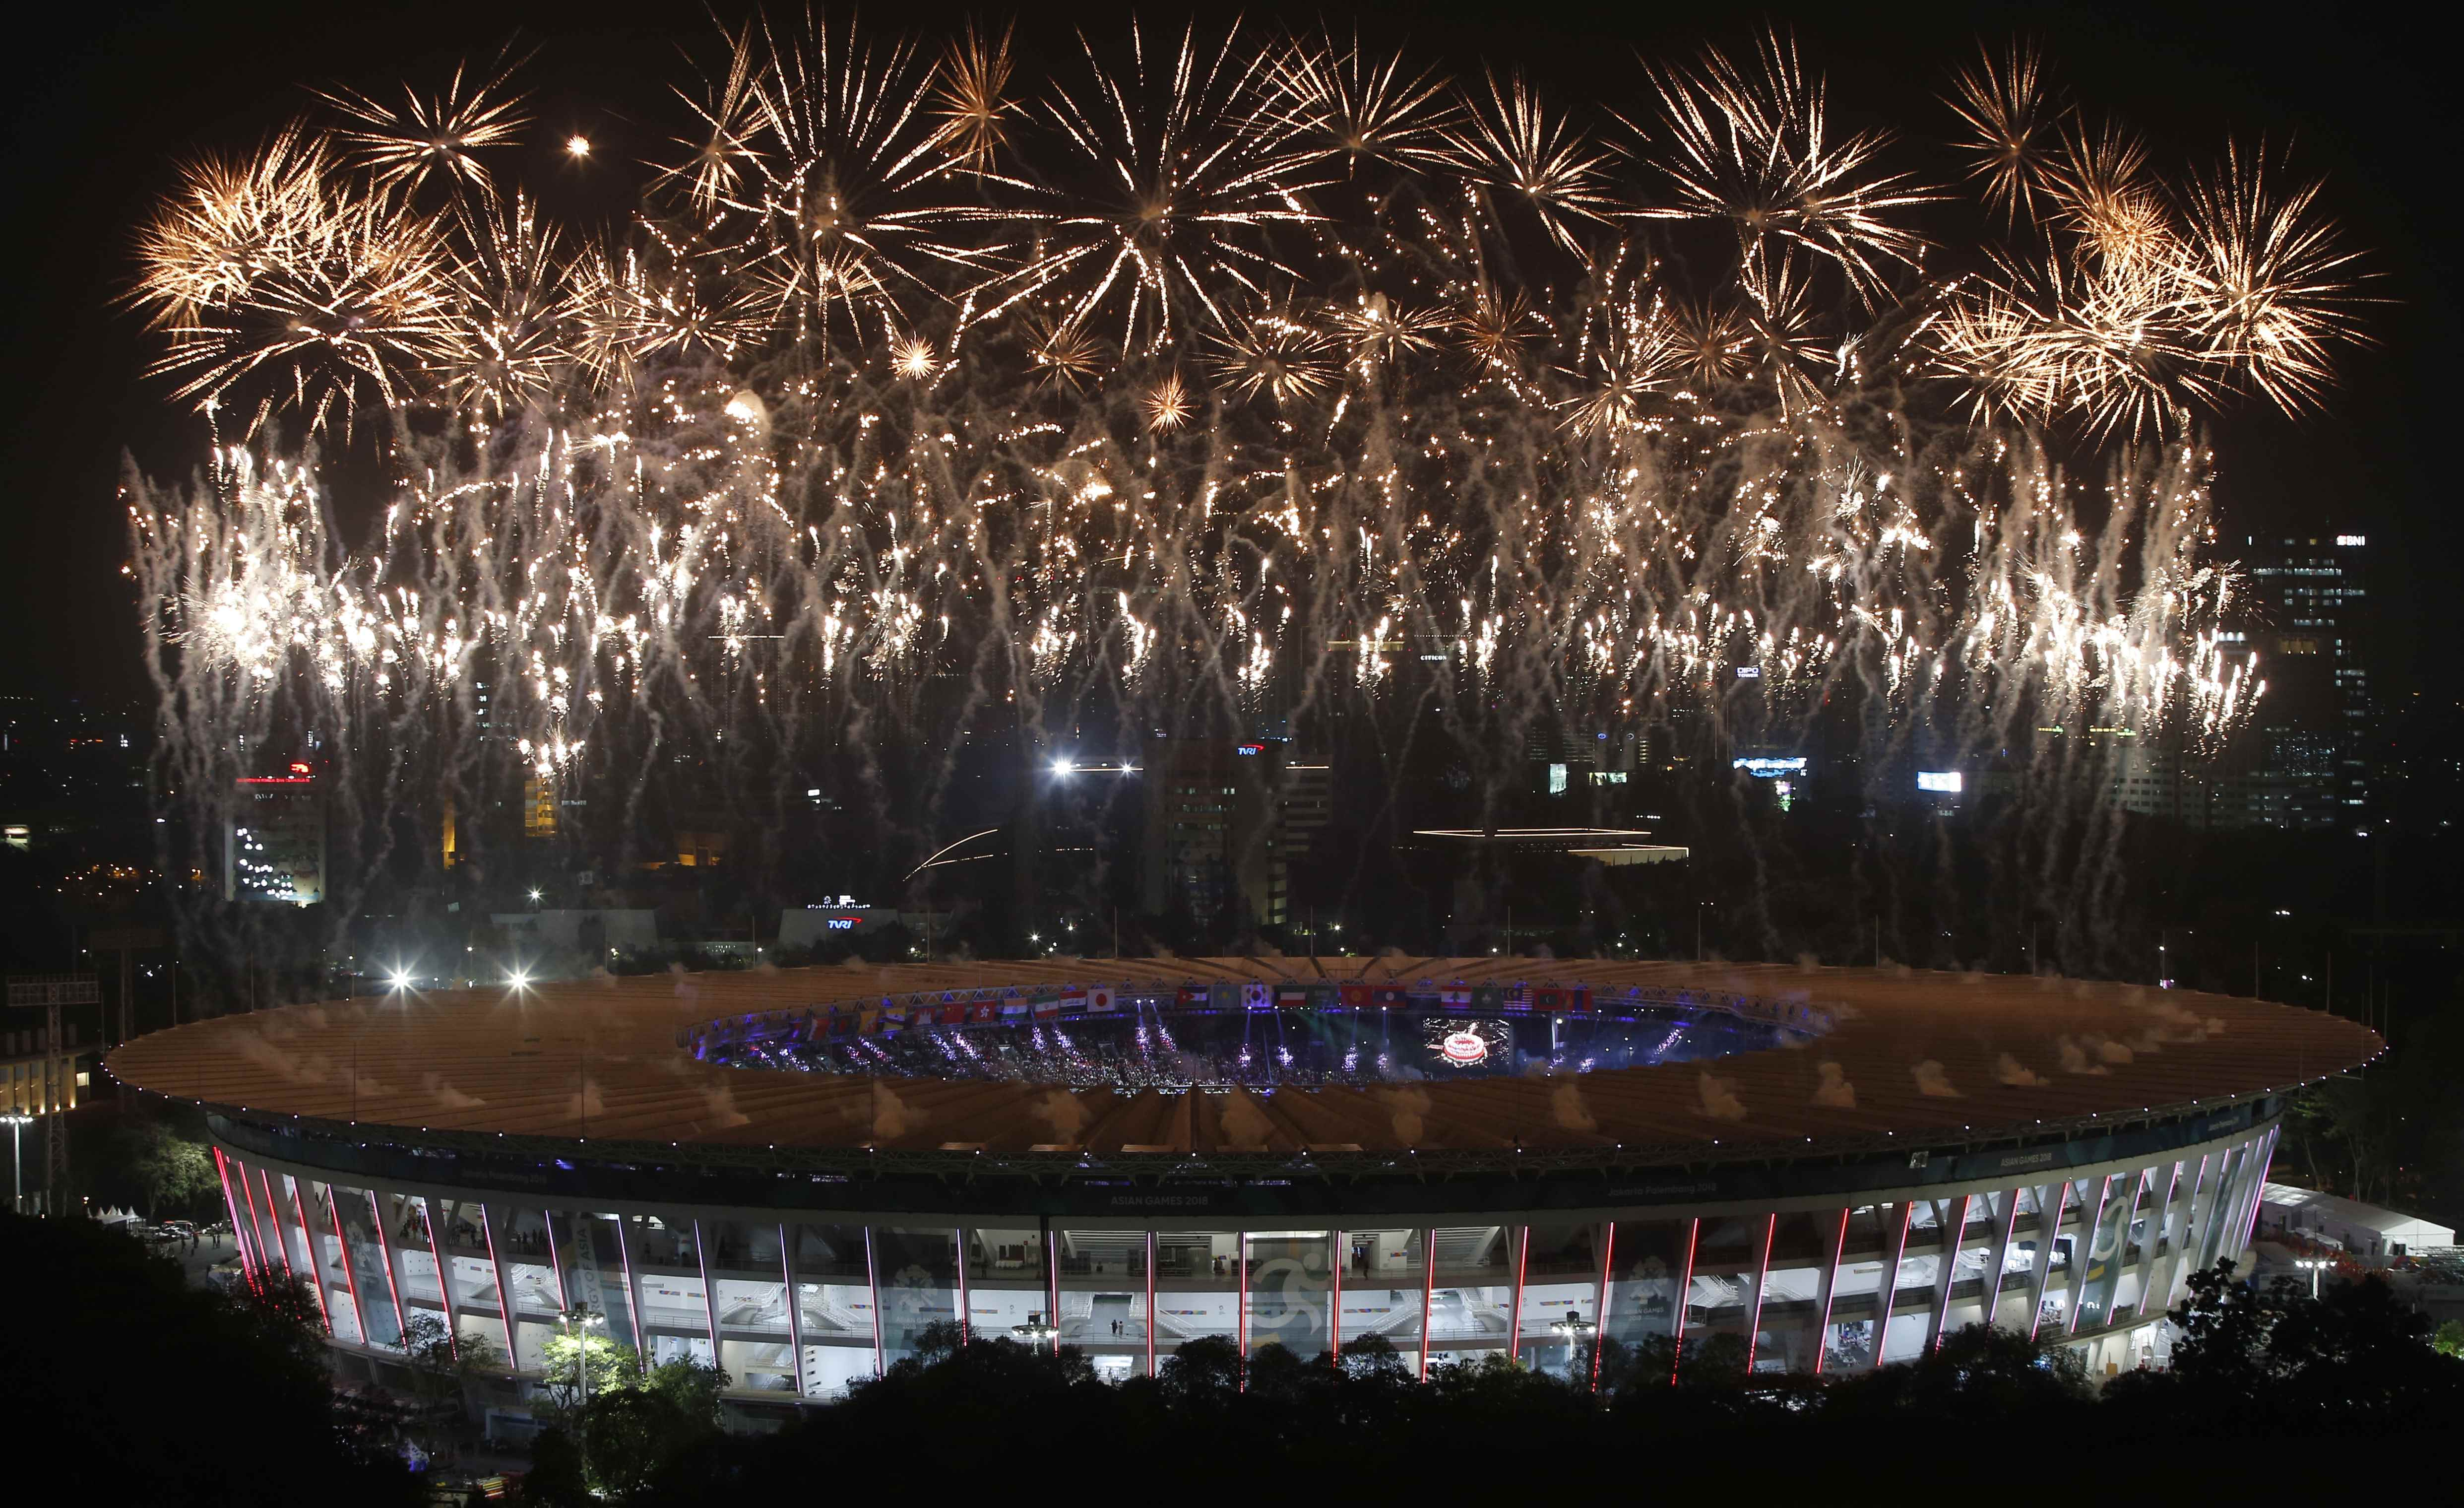 2018 Asian Games u2013 Opening ceremony - GBK Main Stadium u2013 Jakarta, Indonesia u2013 August 18, 2018 u2013 A general view of fireworks during the opening ceremony. REUTERS